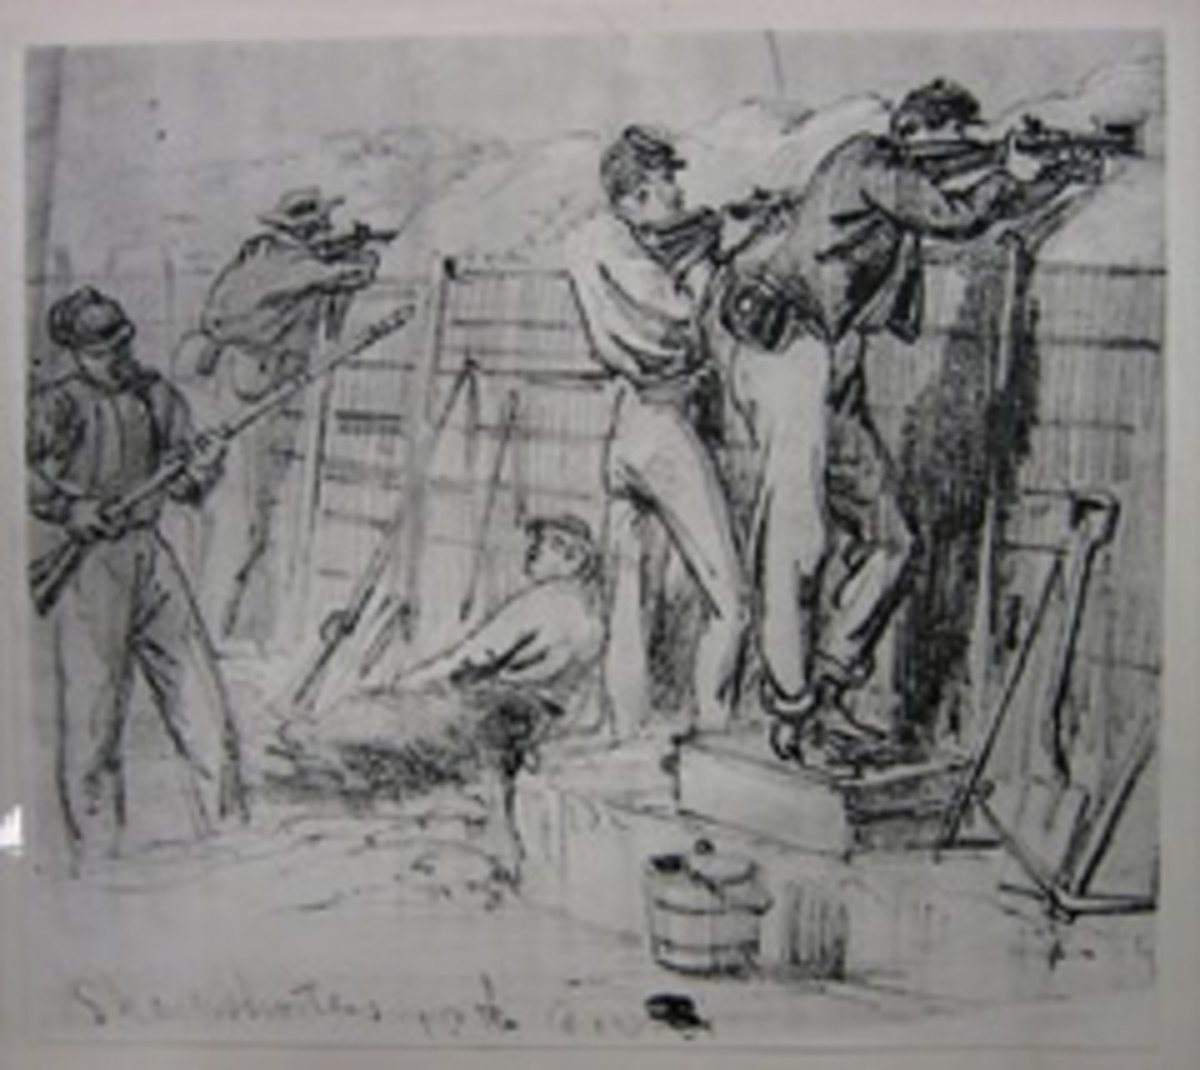 Sketch - snipers use firing steps to aim over the trench walls. Note the retaining wall on the side of the trench